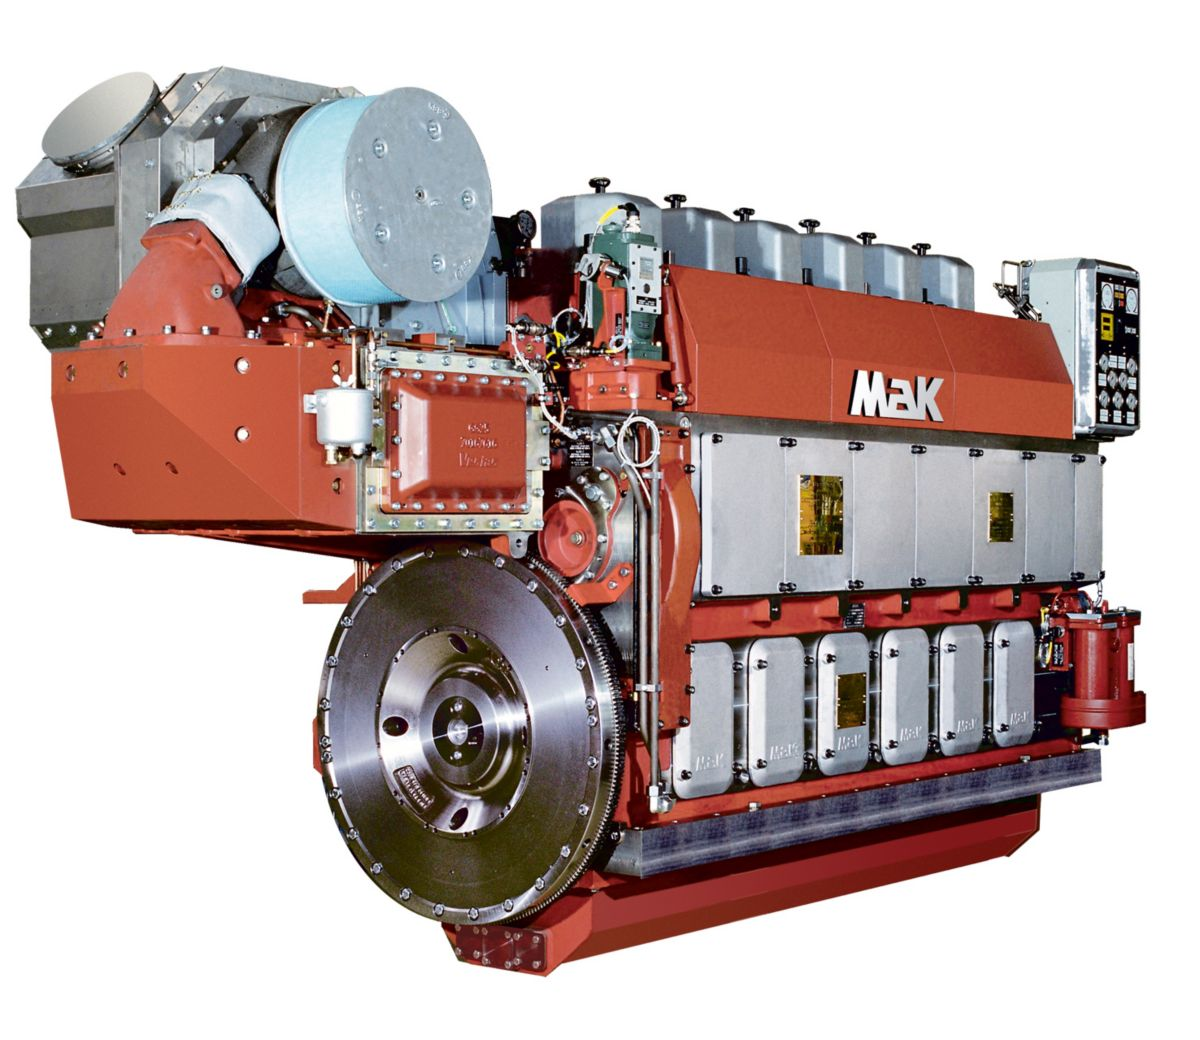 M 20 C Marine Propulsion Engine